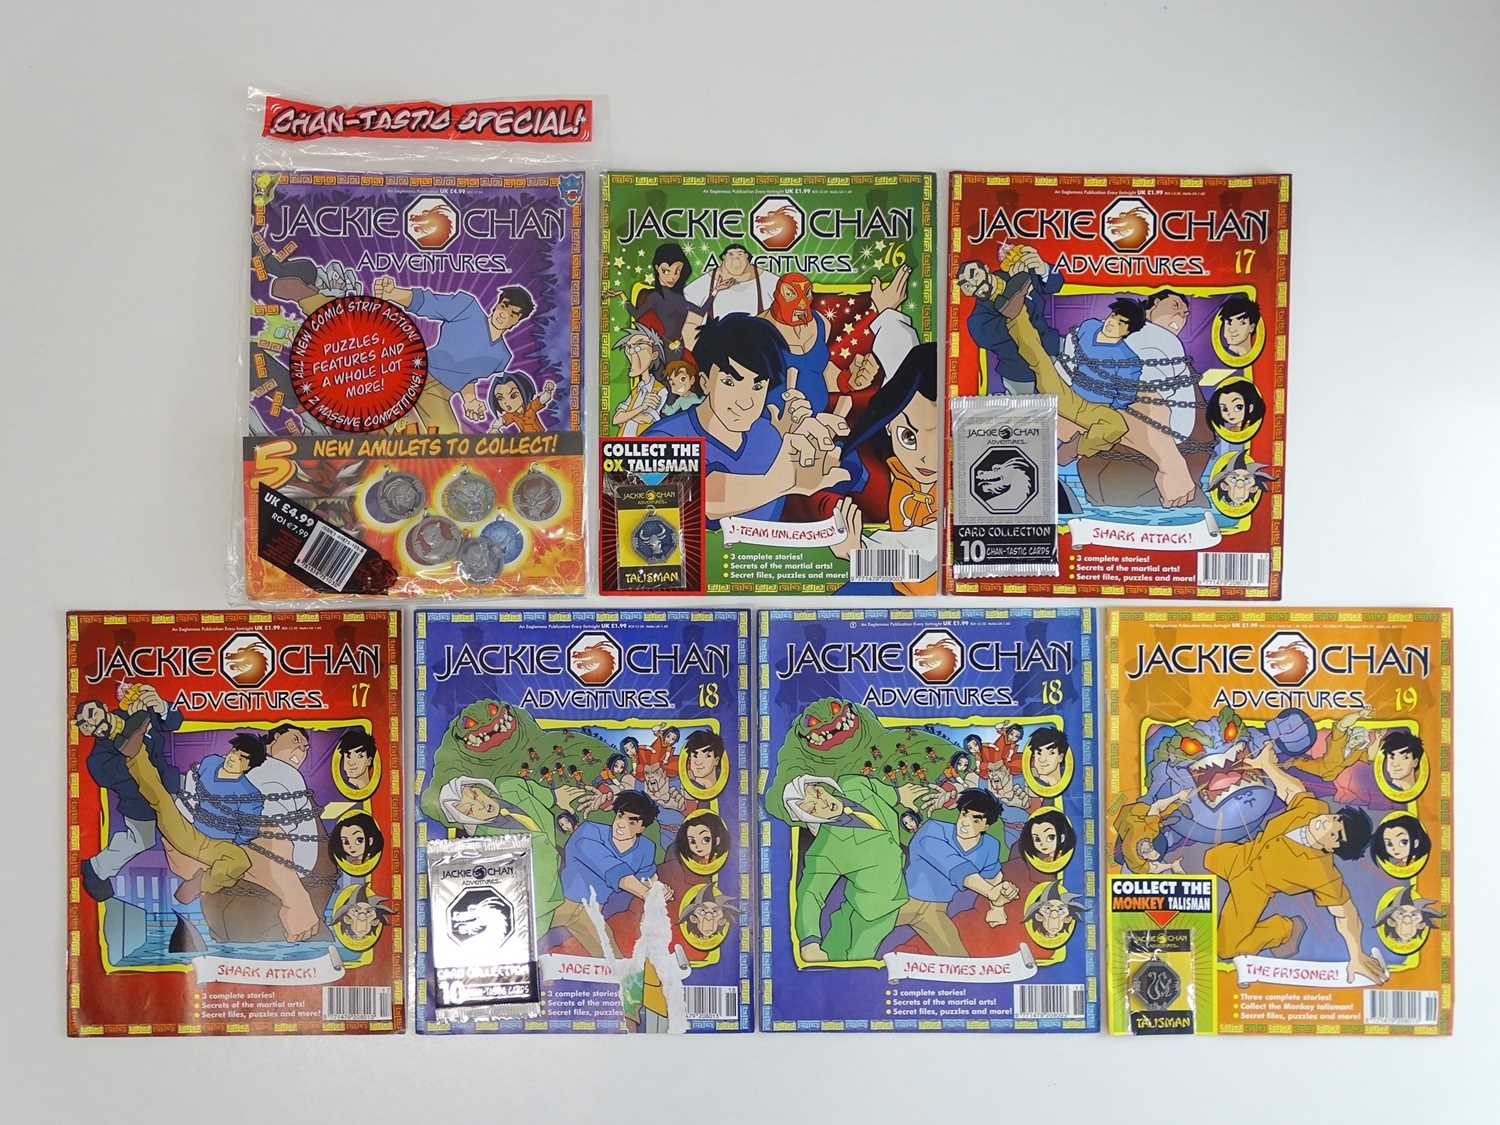 JACKIE CHAN ADVENTURES #16, 17 (x 2), 18 (x 2), 10 & CHANTASTIC SPECIAL - (7 in Lot) - (2003/06 -